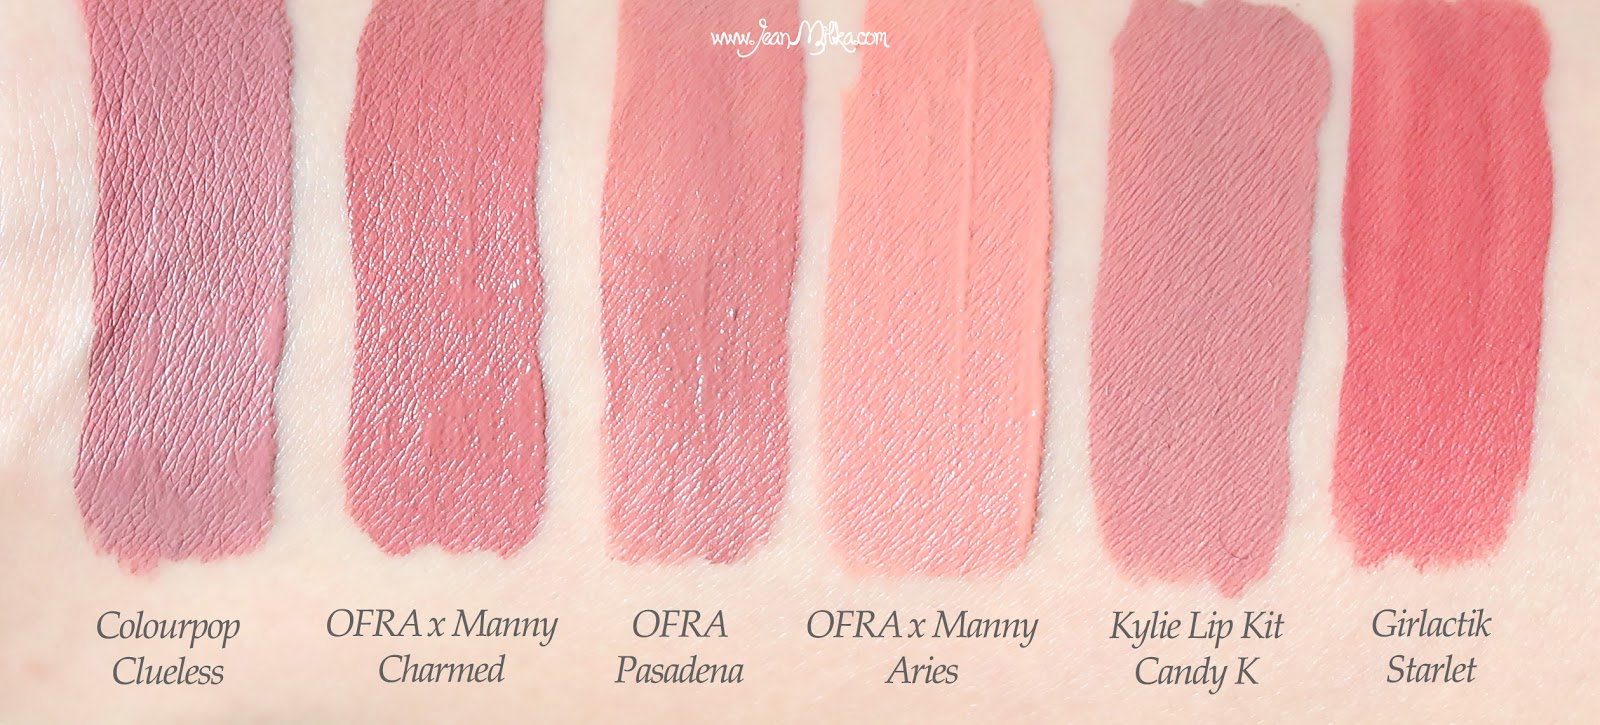 ofra x manny, ofraxmanny, ofra manny, ofra x manny mua, ofra, ofra cosmetics, ofra liquid lipstick, liquid lipstick, product review, swatches, beauty blog, colorpop, kylie lip kit, girlactik